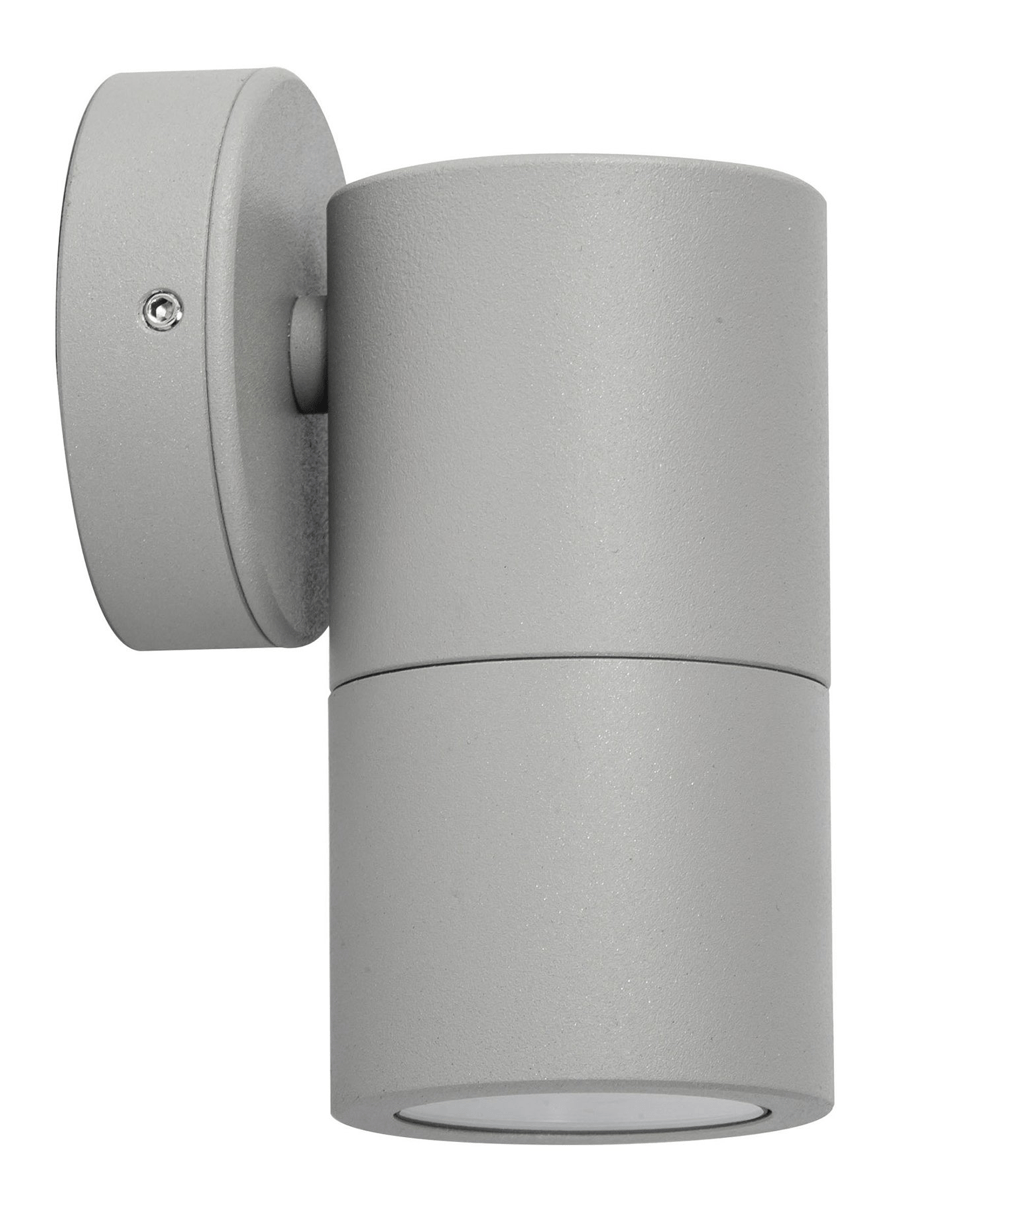 Exterior Wall Light TIVAH - Fixed Down Wall Light LED Downlights Sydney